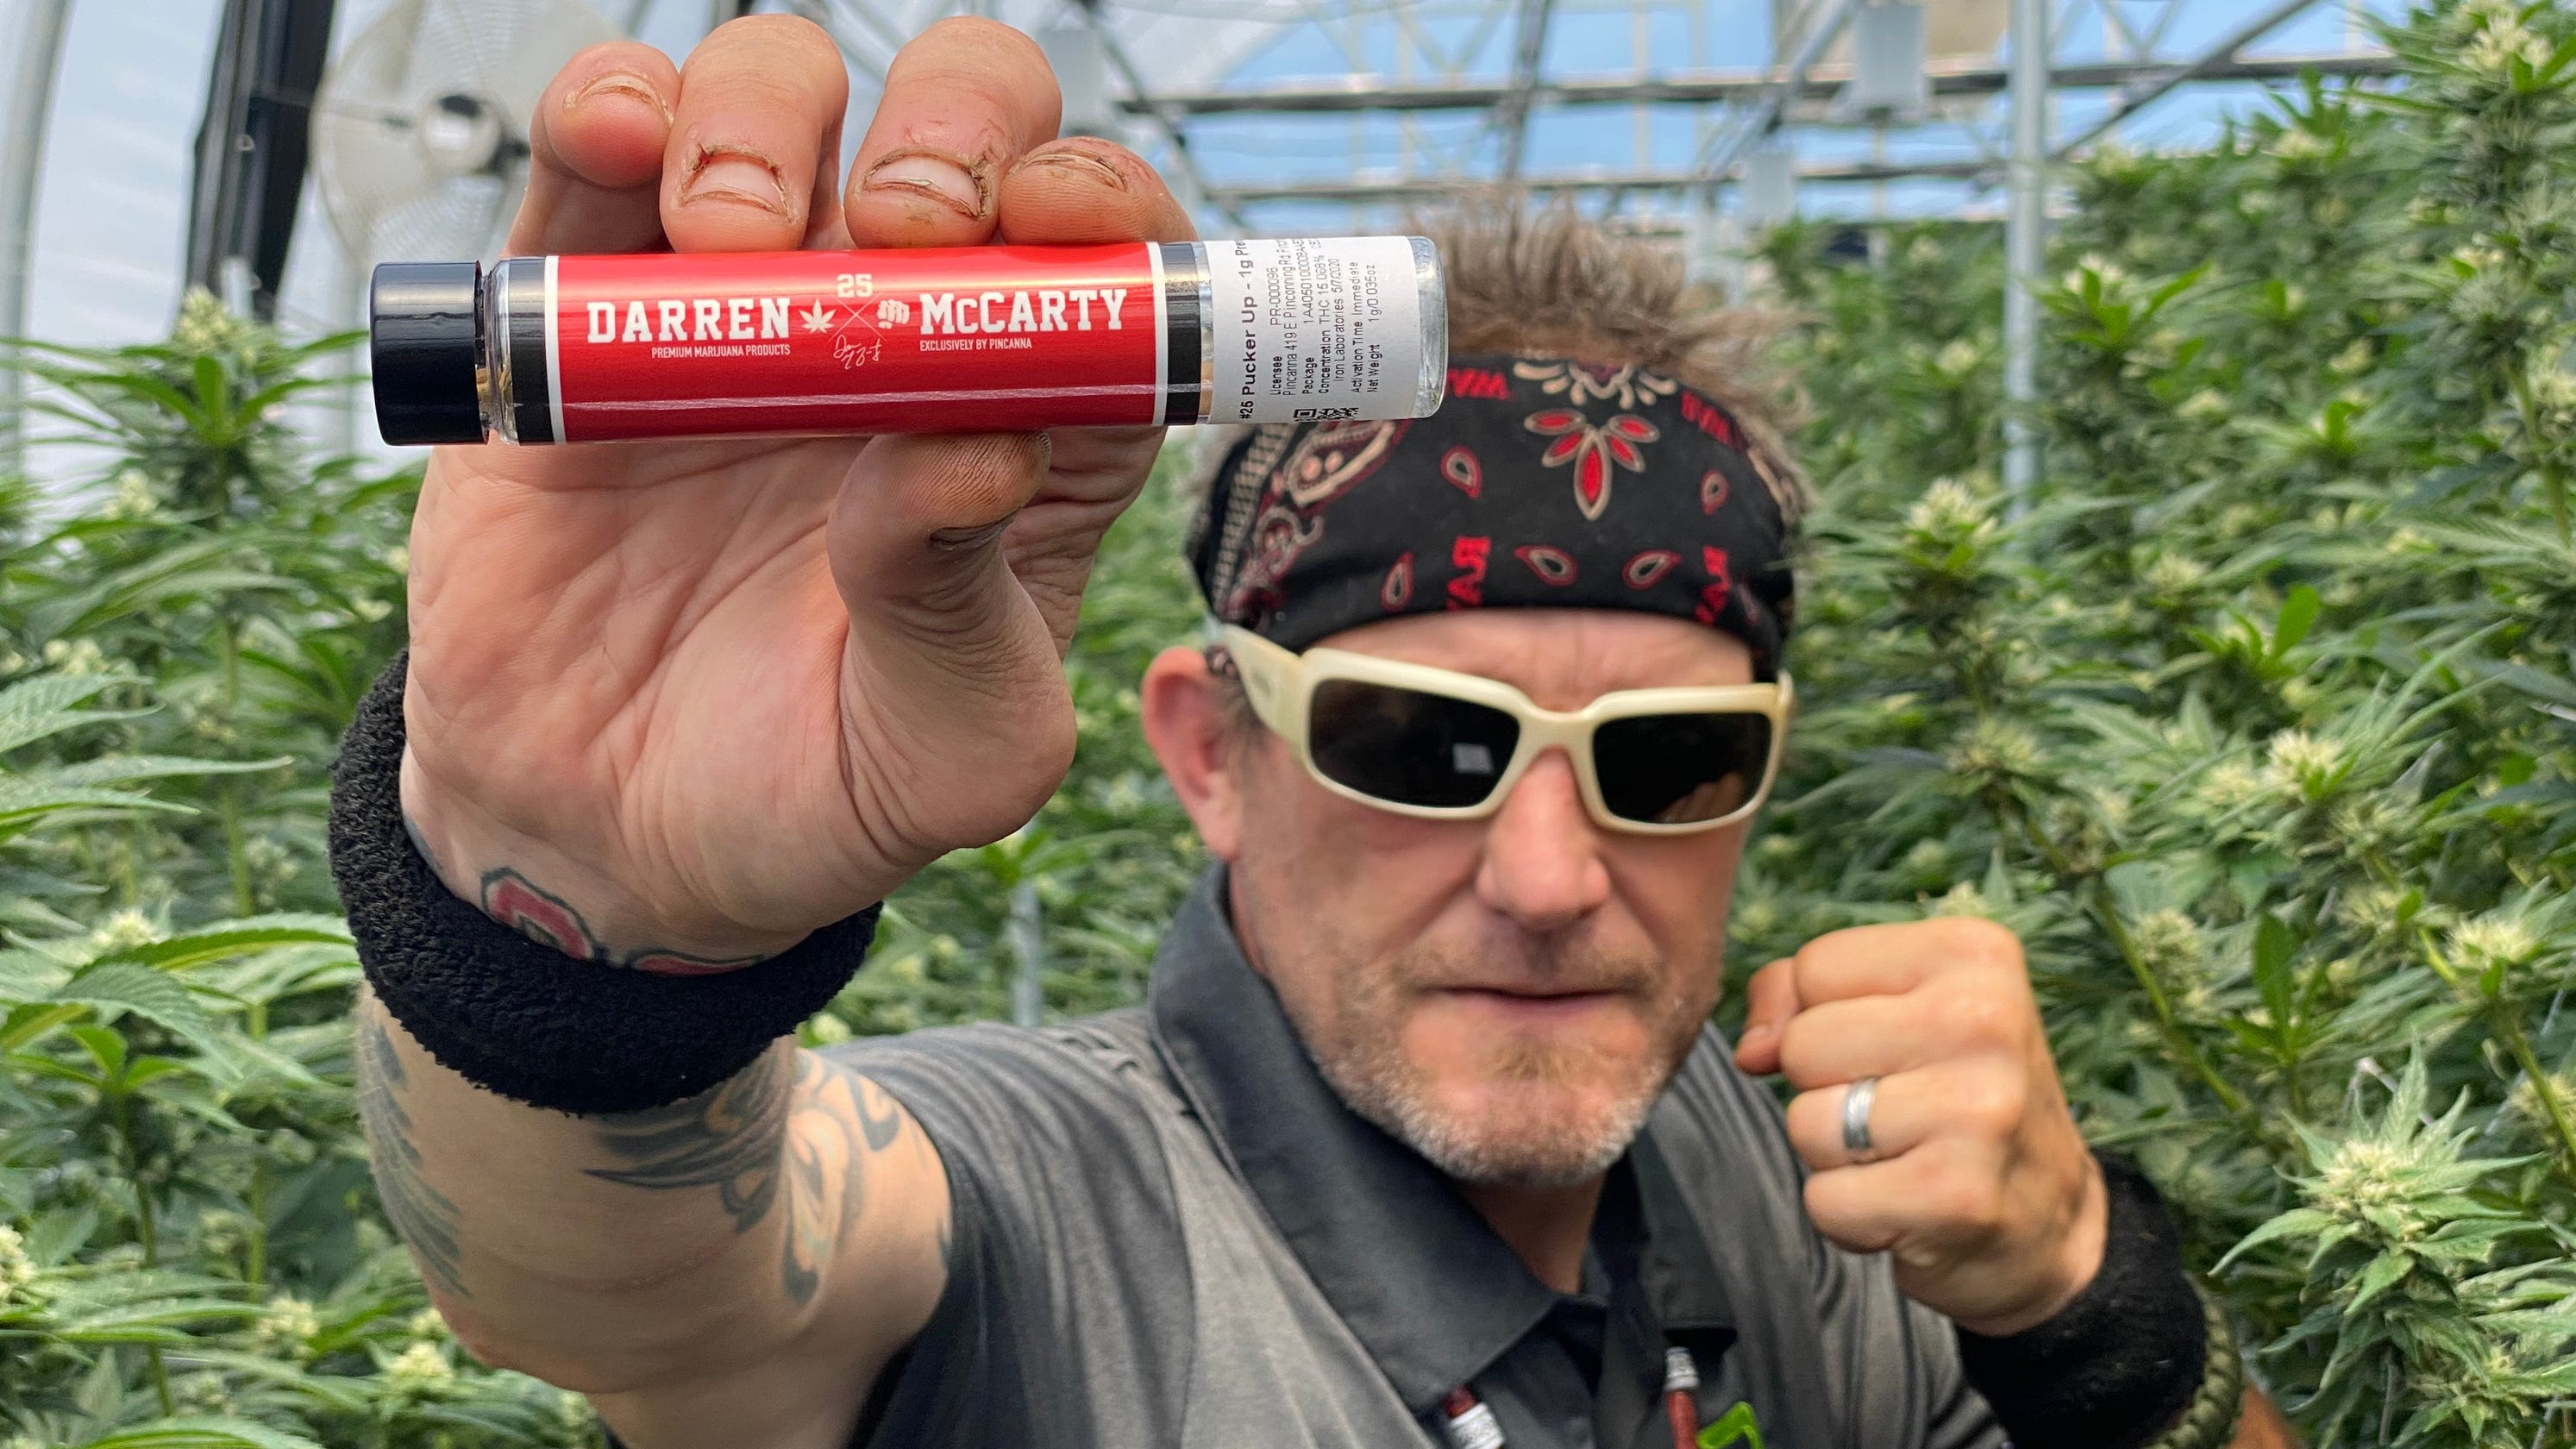 Darren McCarty knew how to beat any drug test. Now his marijuana brand is on the market